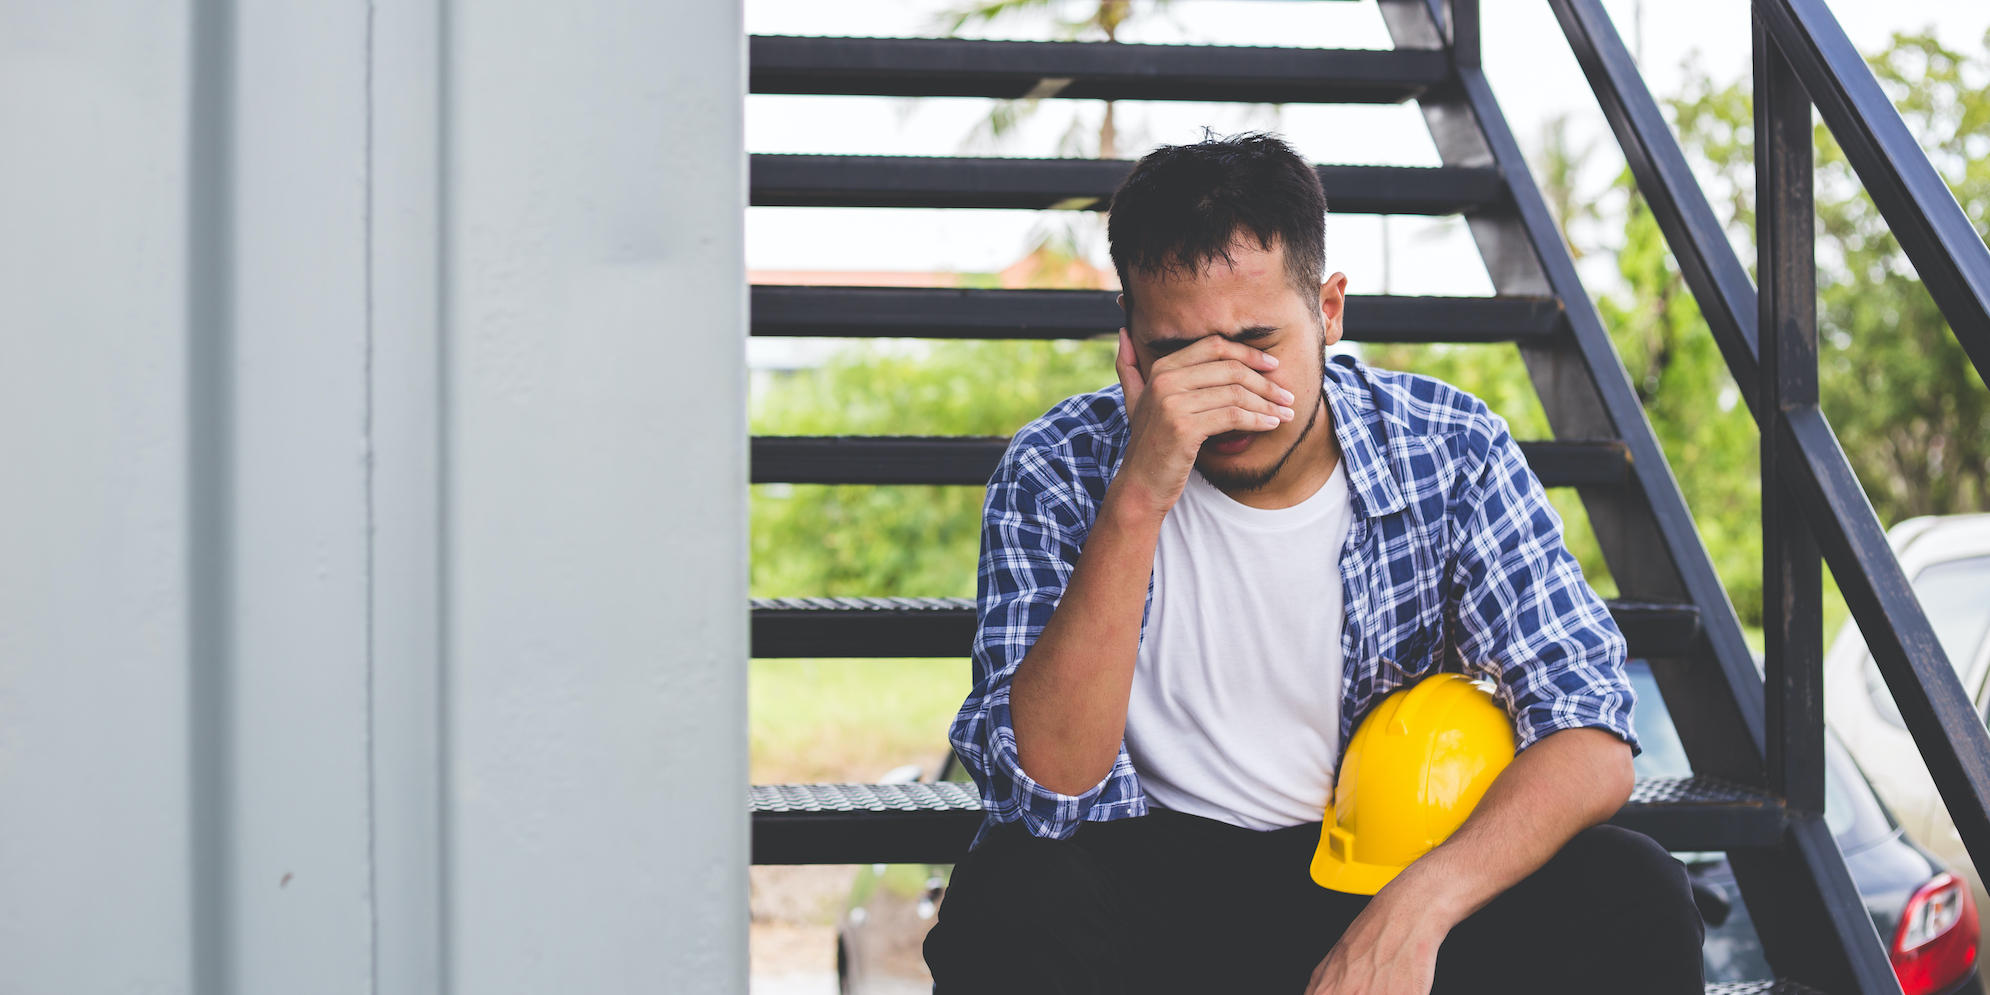 Addressing Worker Fatigue to Prevent Safety Incidents